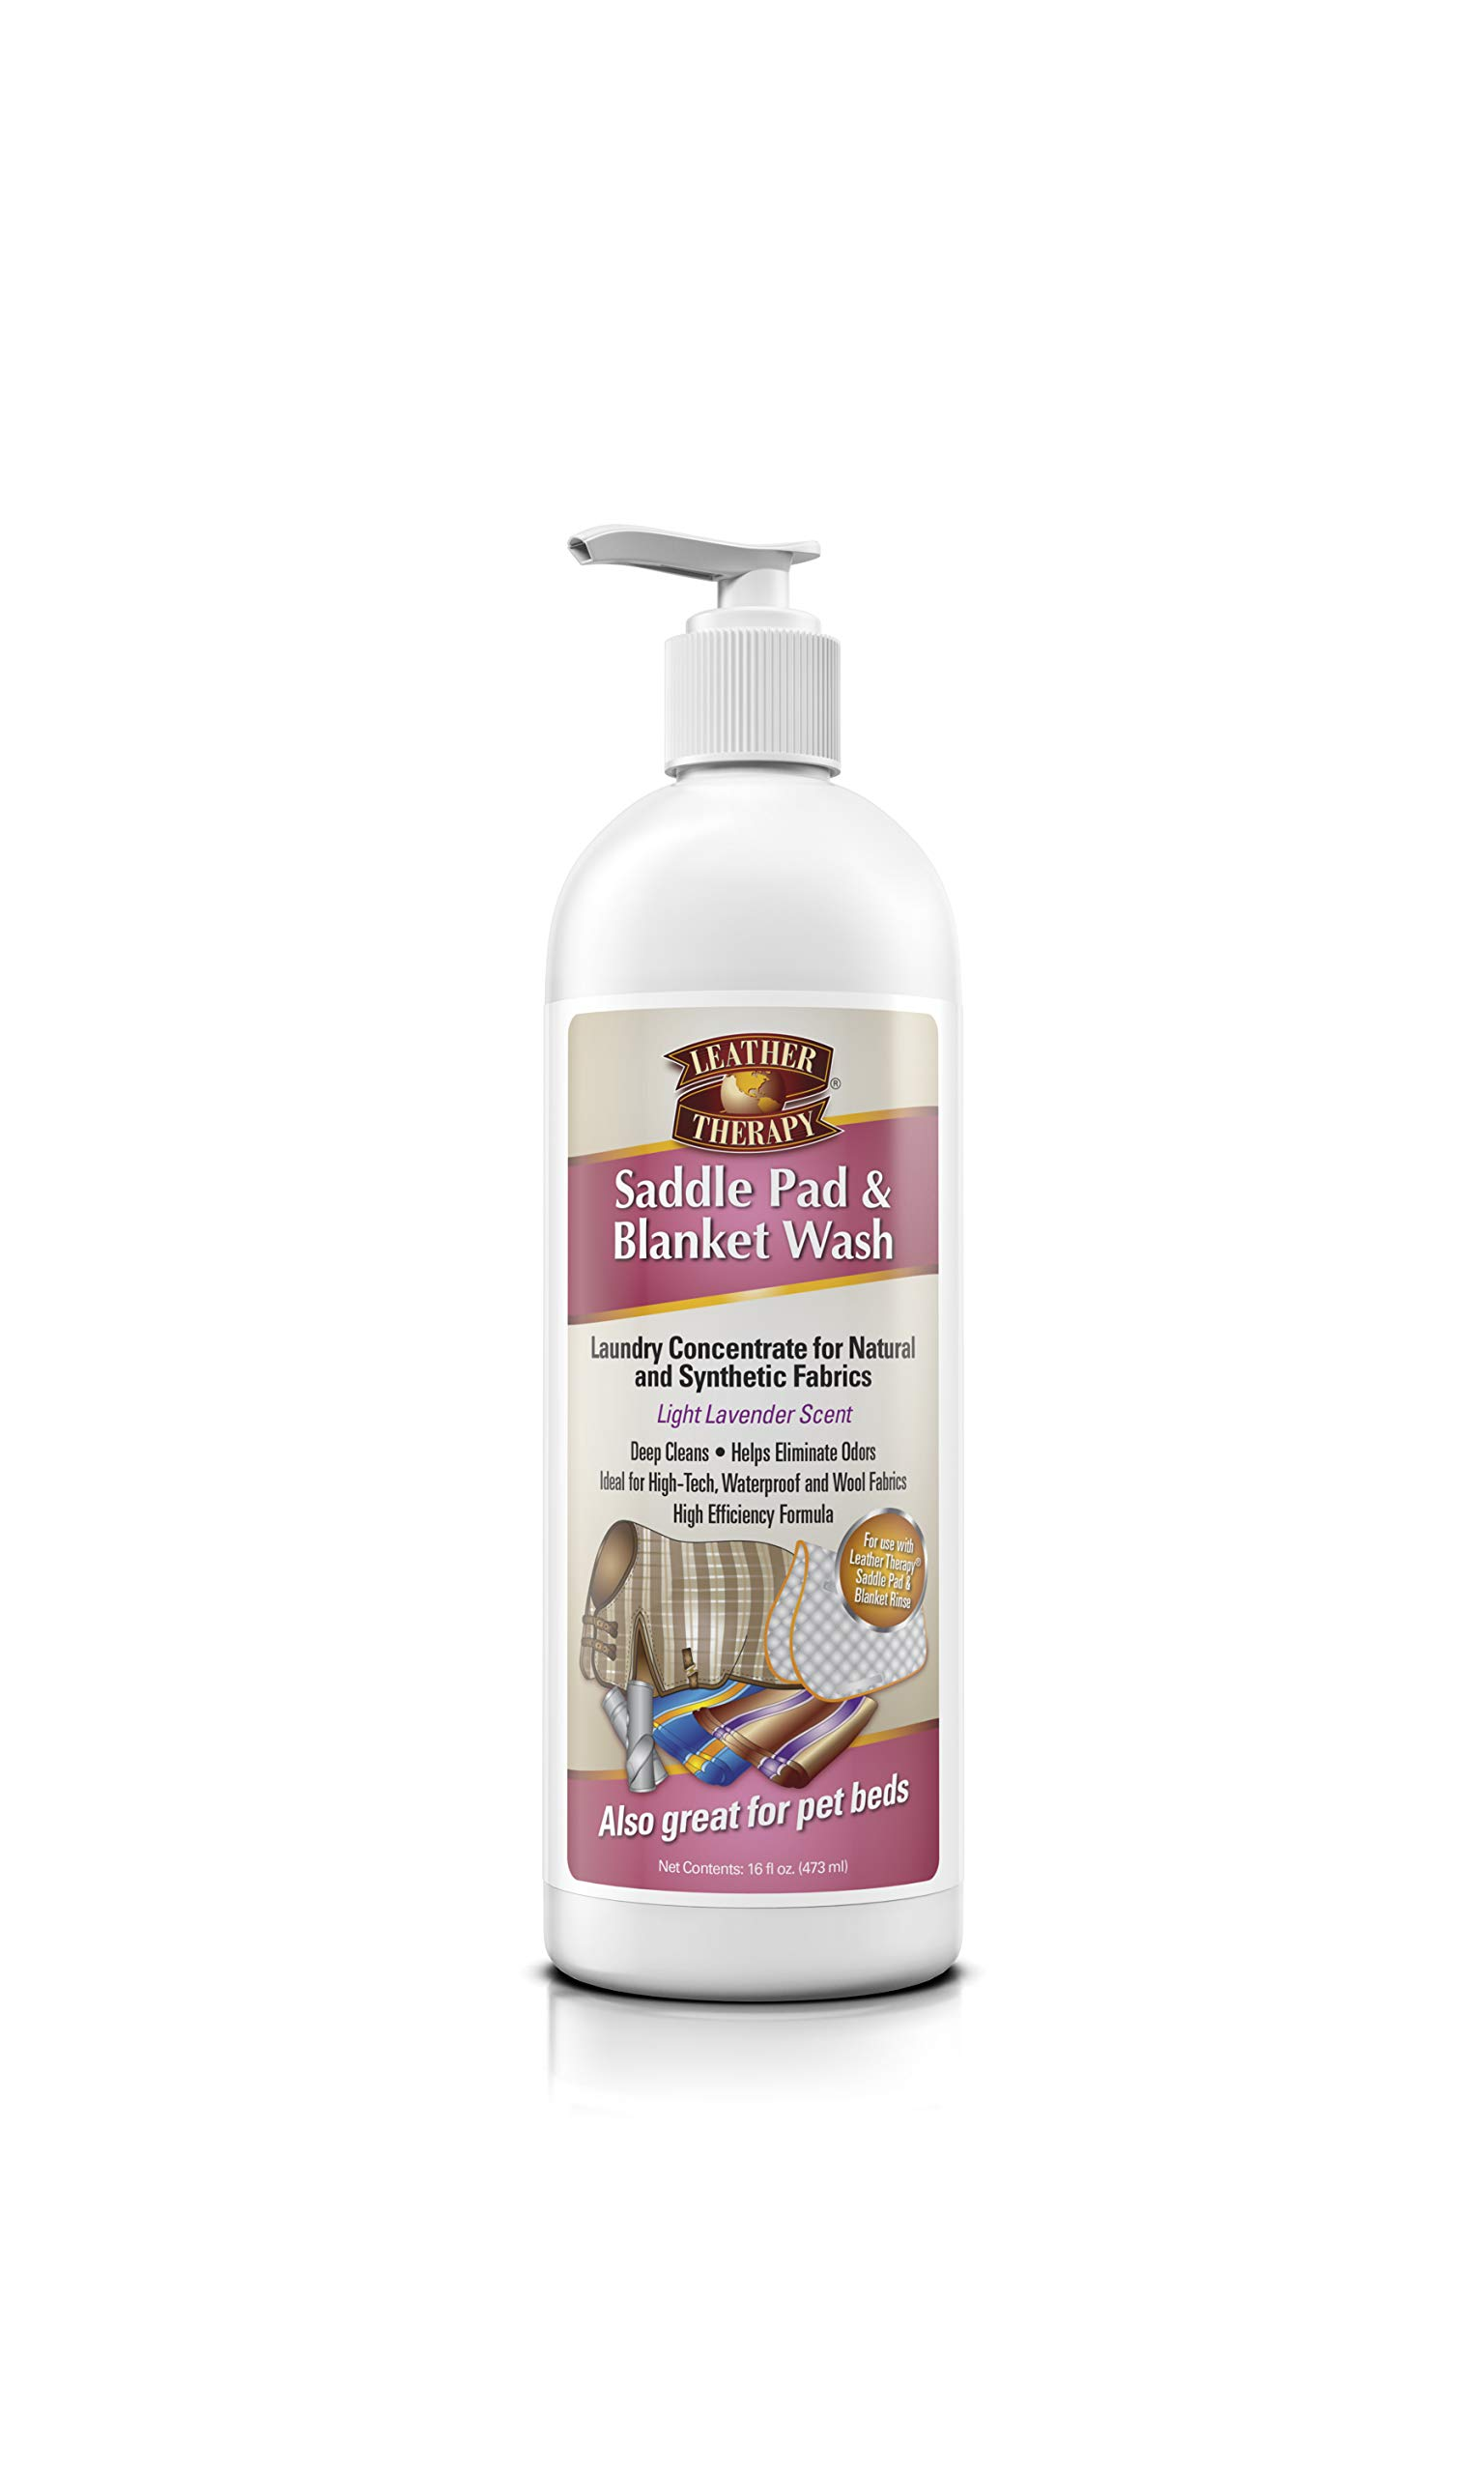 Leather Therapy - Saddle Pad & Blanket Wash Solution - Multi-Fabric Cleaner to Soften & Refresh Horse Accessories & Pet Beds, 16 oz